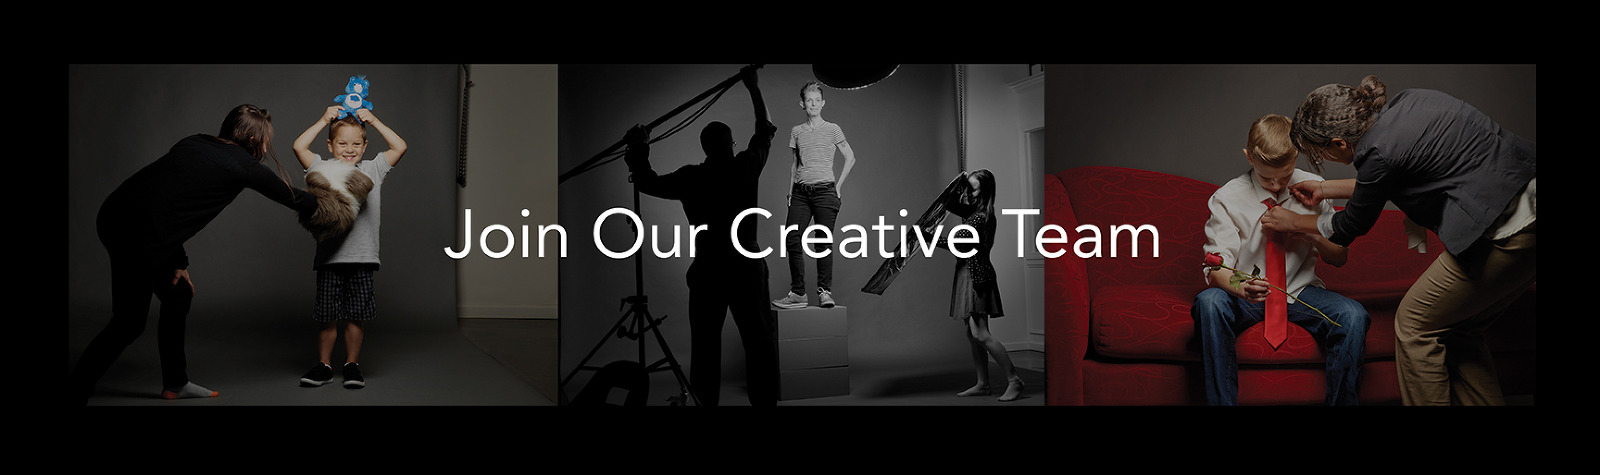 Join Our Creative Team - Willow Street Pictures